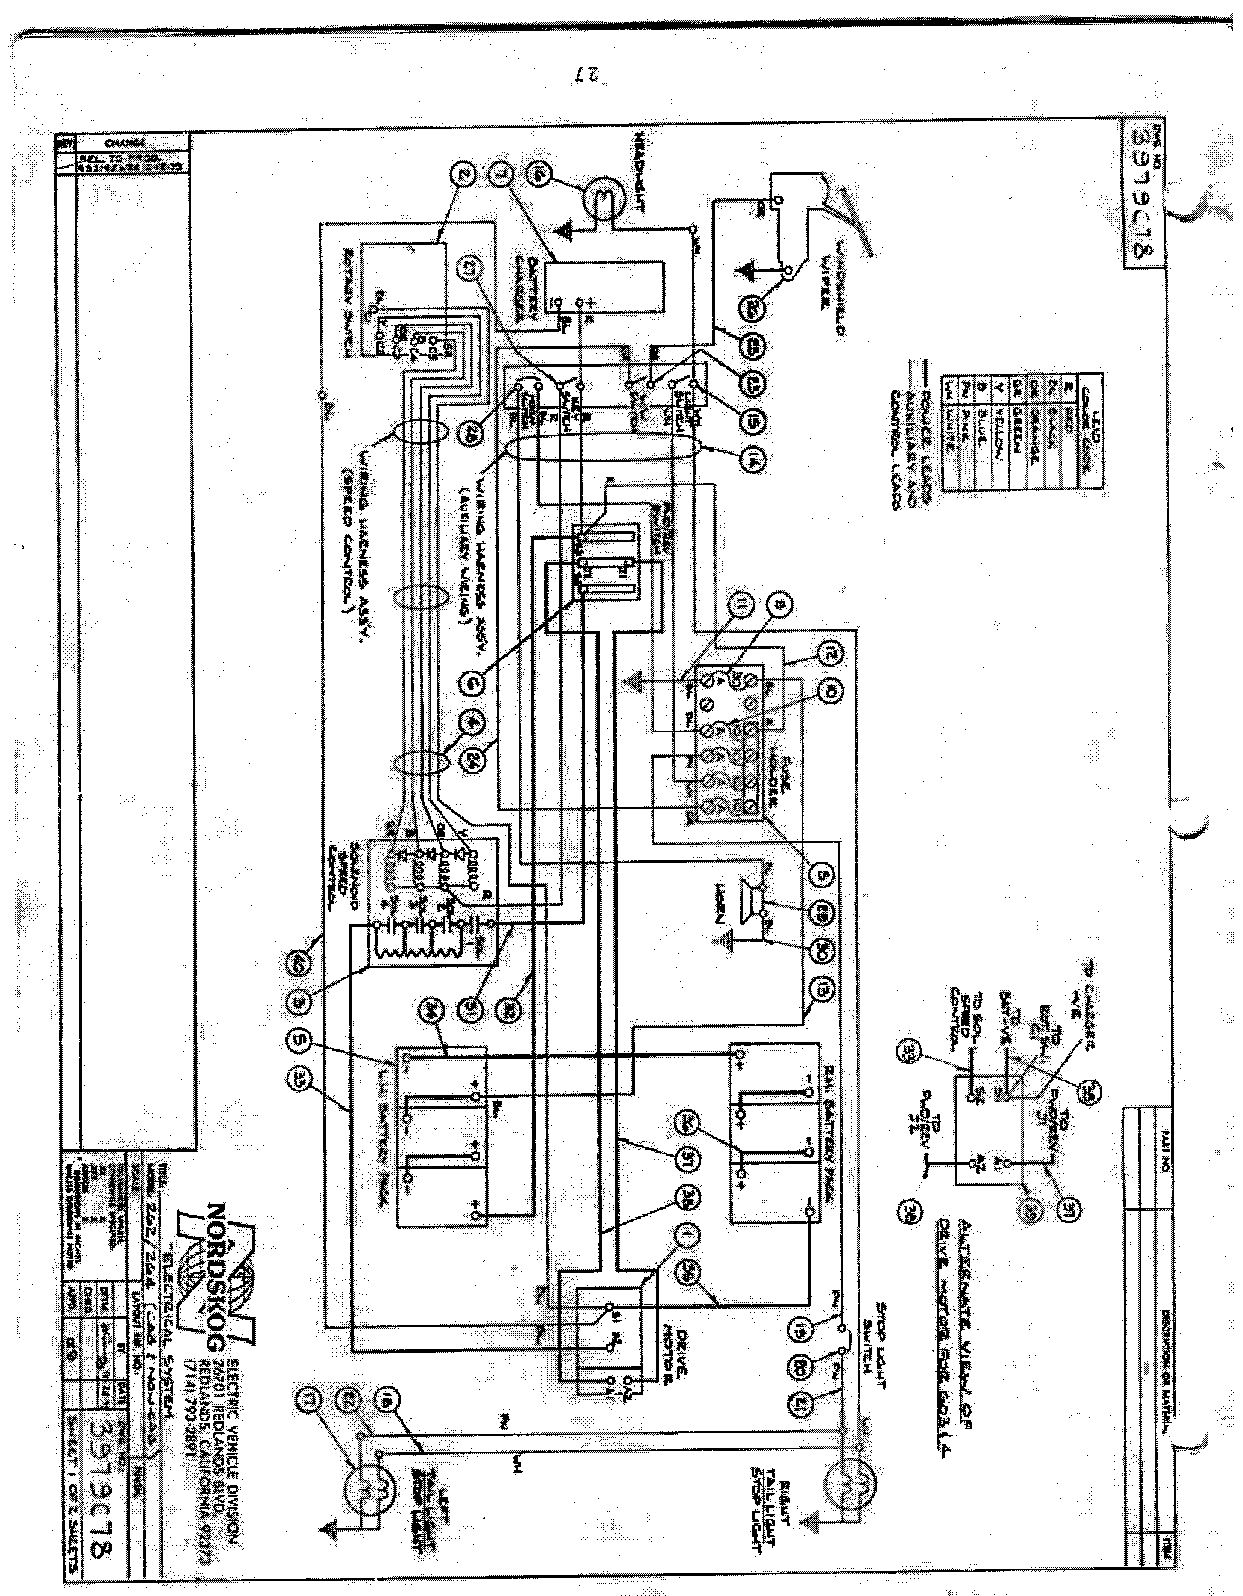 Nordskog262_264 vintagegolfcartparts com westinghouse golf cart wiring diagram at arjmand.co